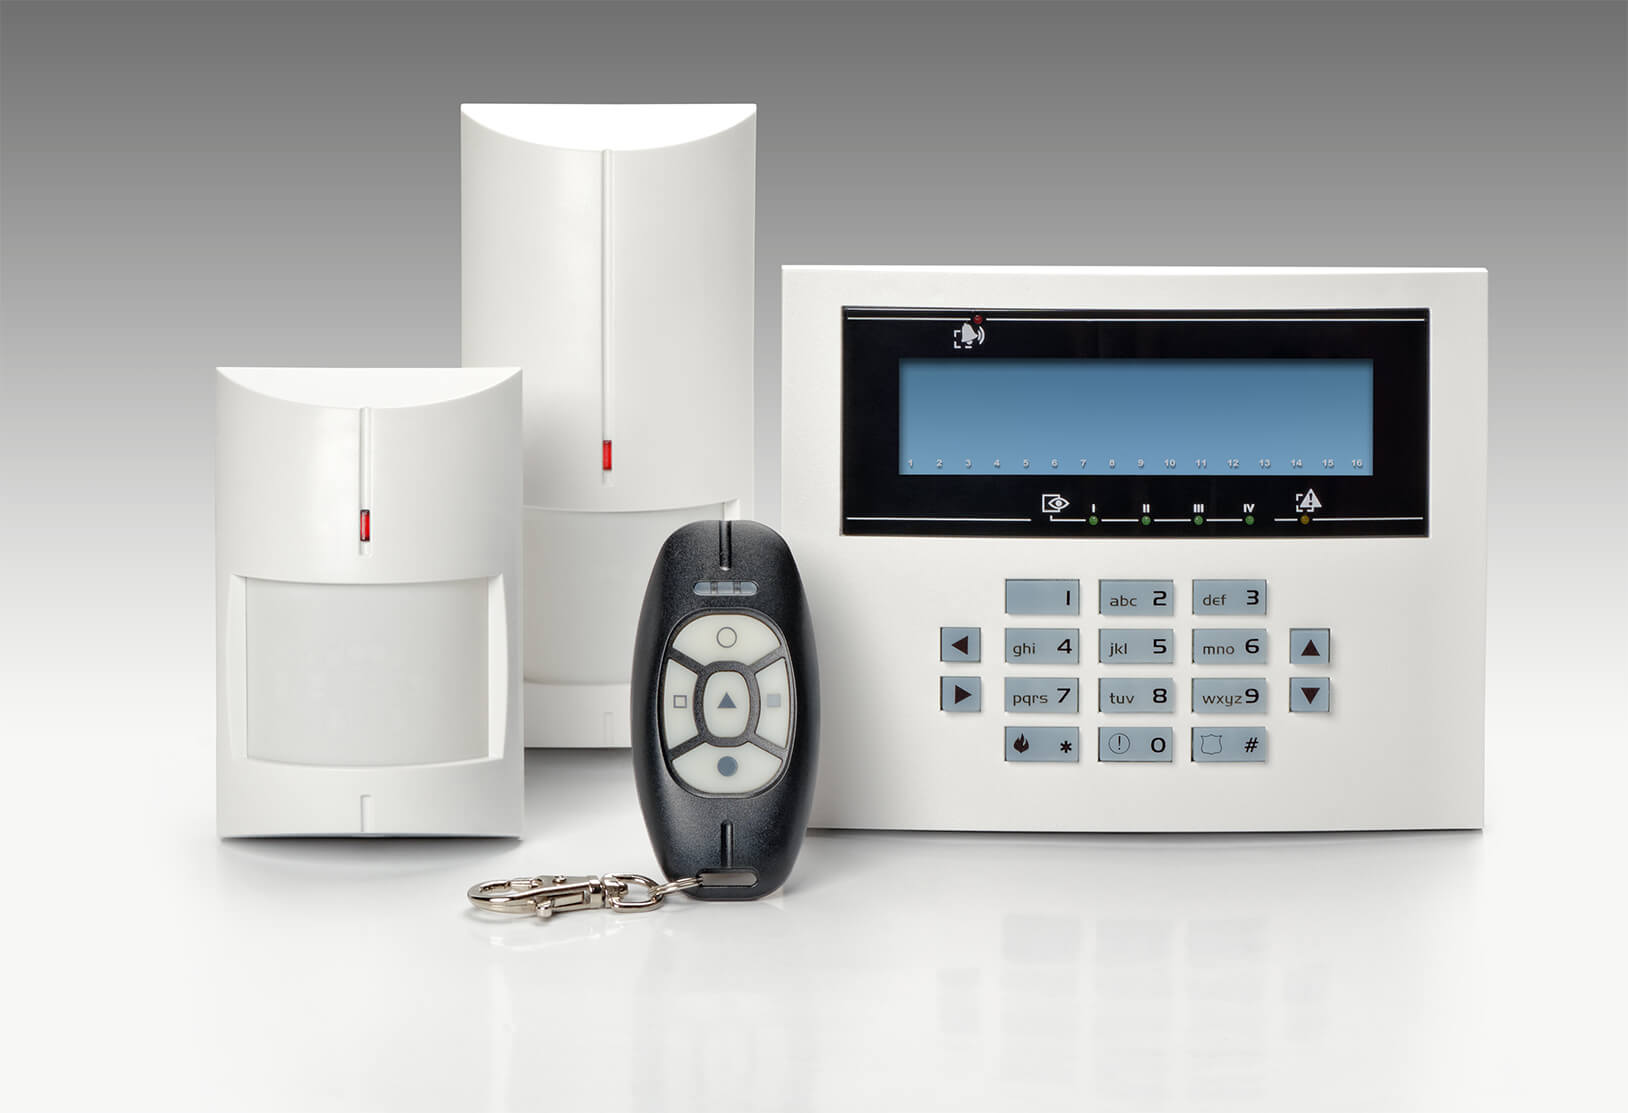 Business & Residential NACOSS Approved Burglar Alarms In Battersea SW18 - Local Battersea SW18 security company.Call 02078872244 - Dedicated to Safety & Security. Companies, shops and homes ..